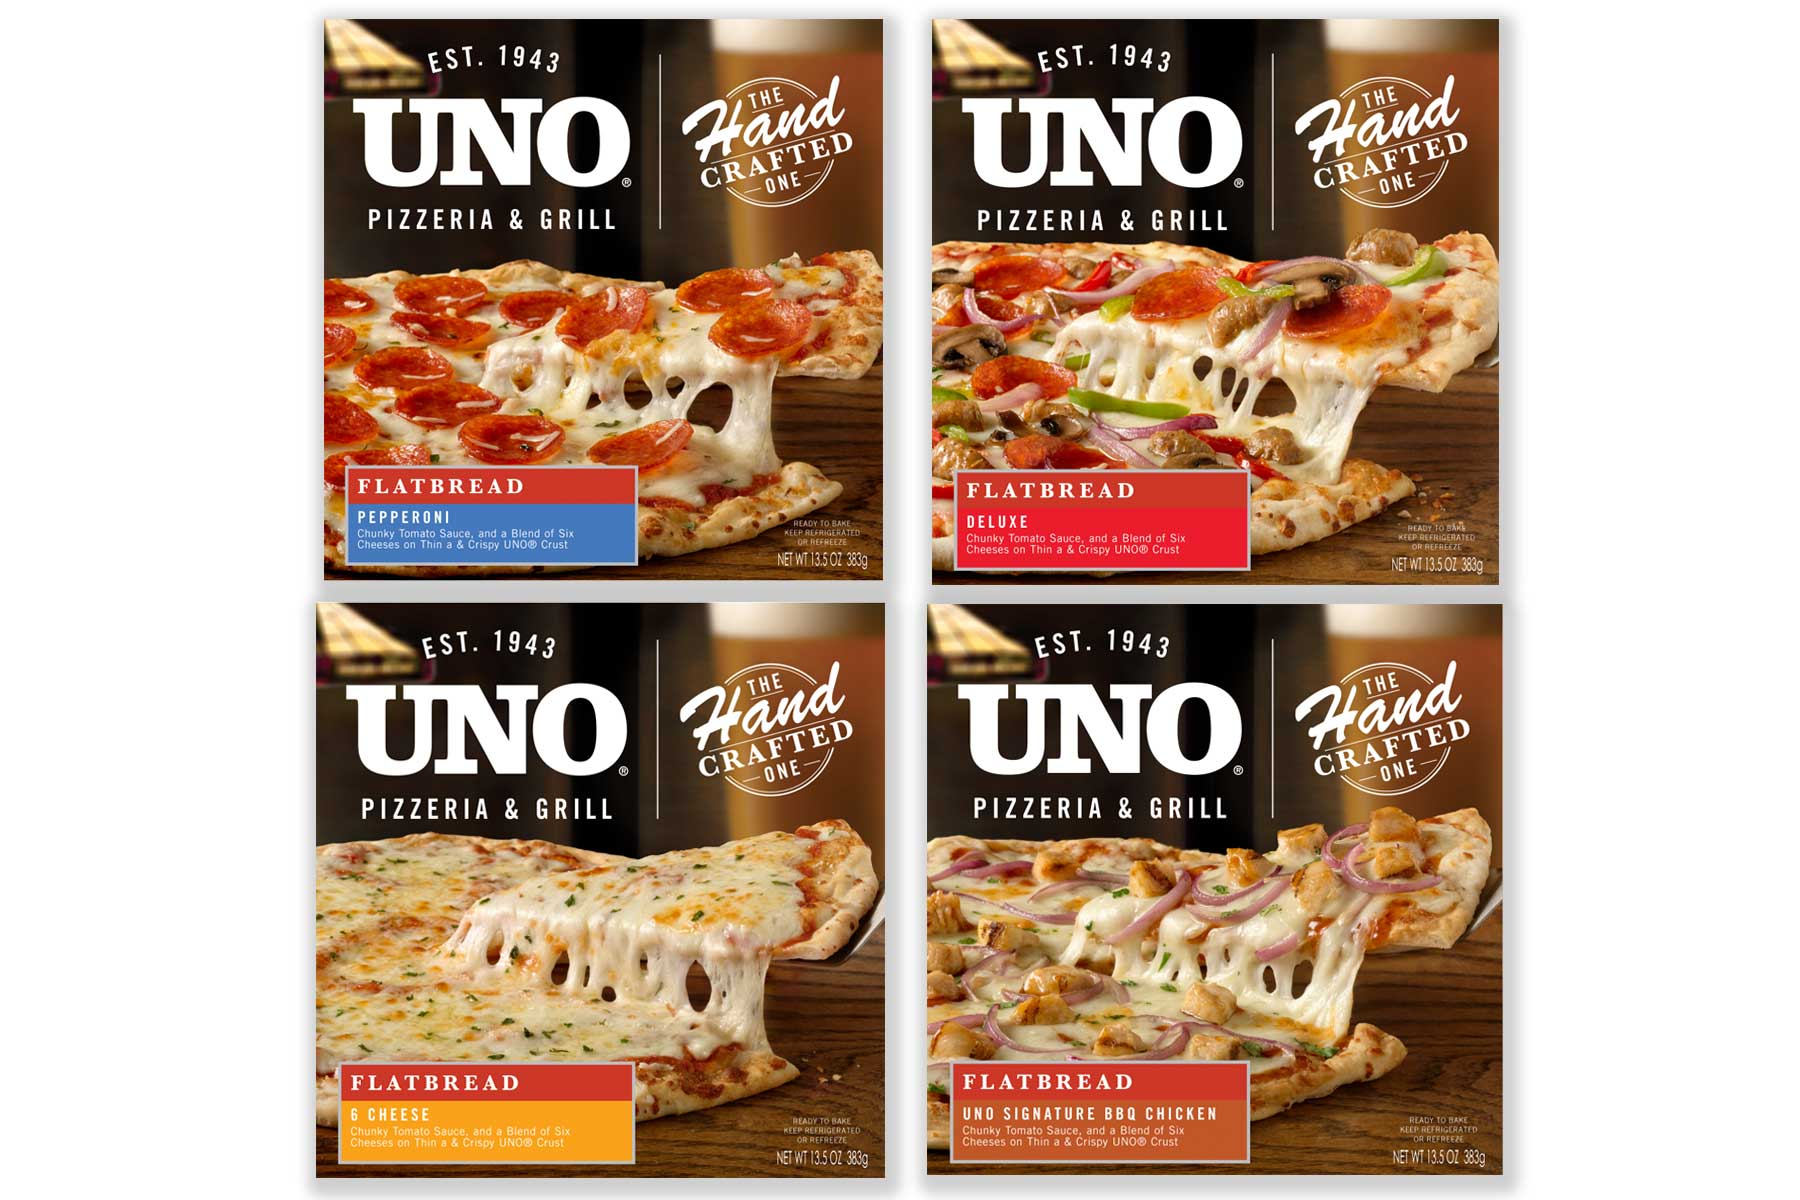 Unos Packaging